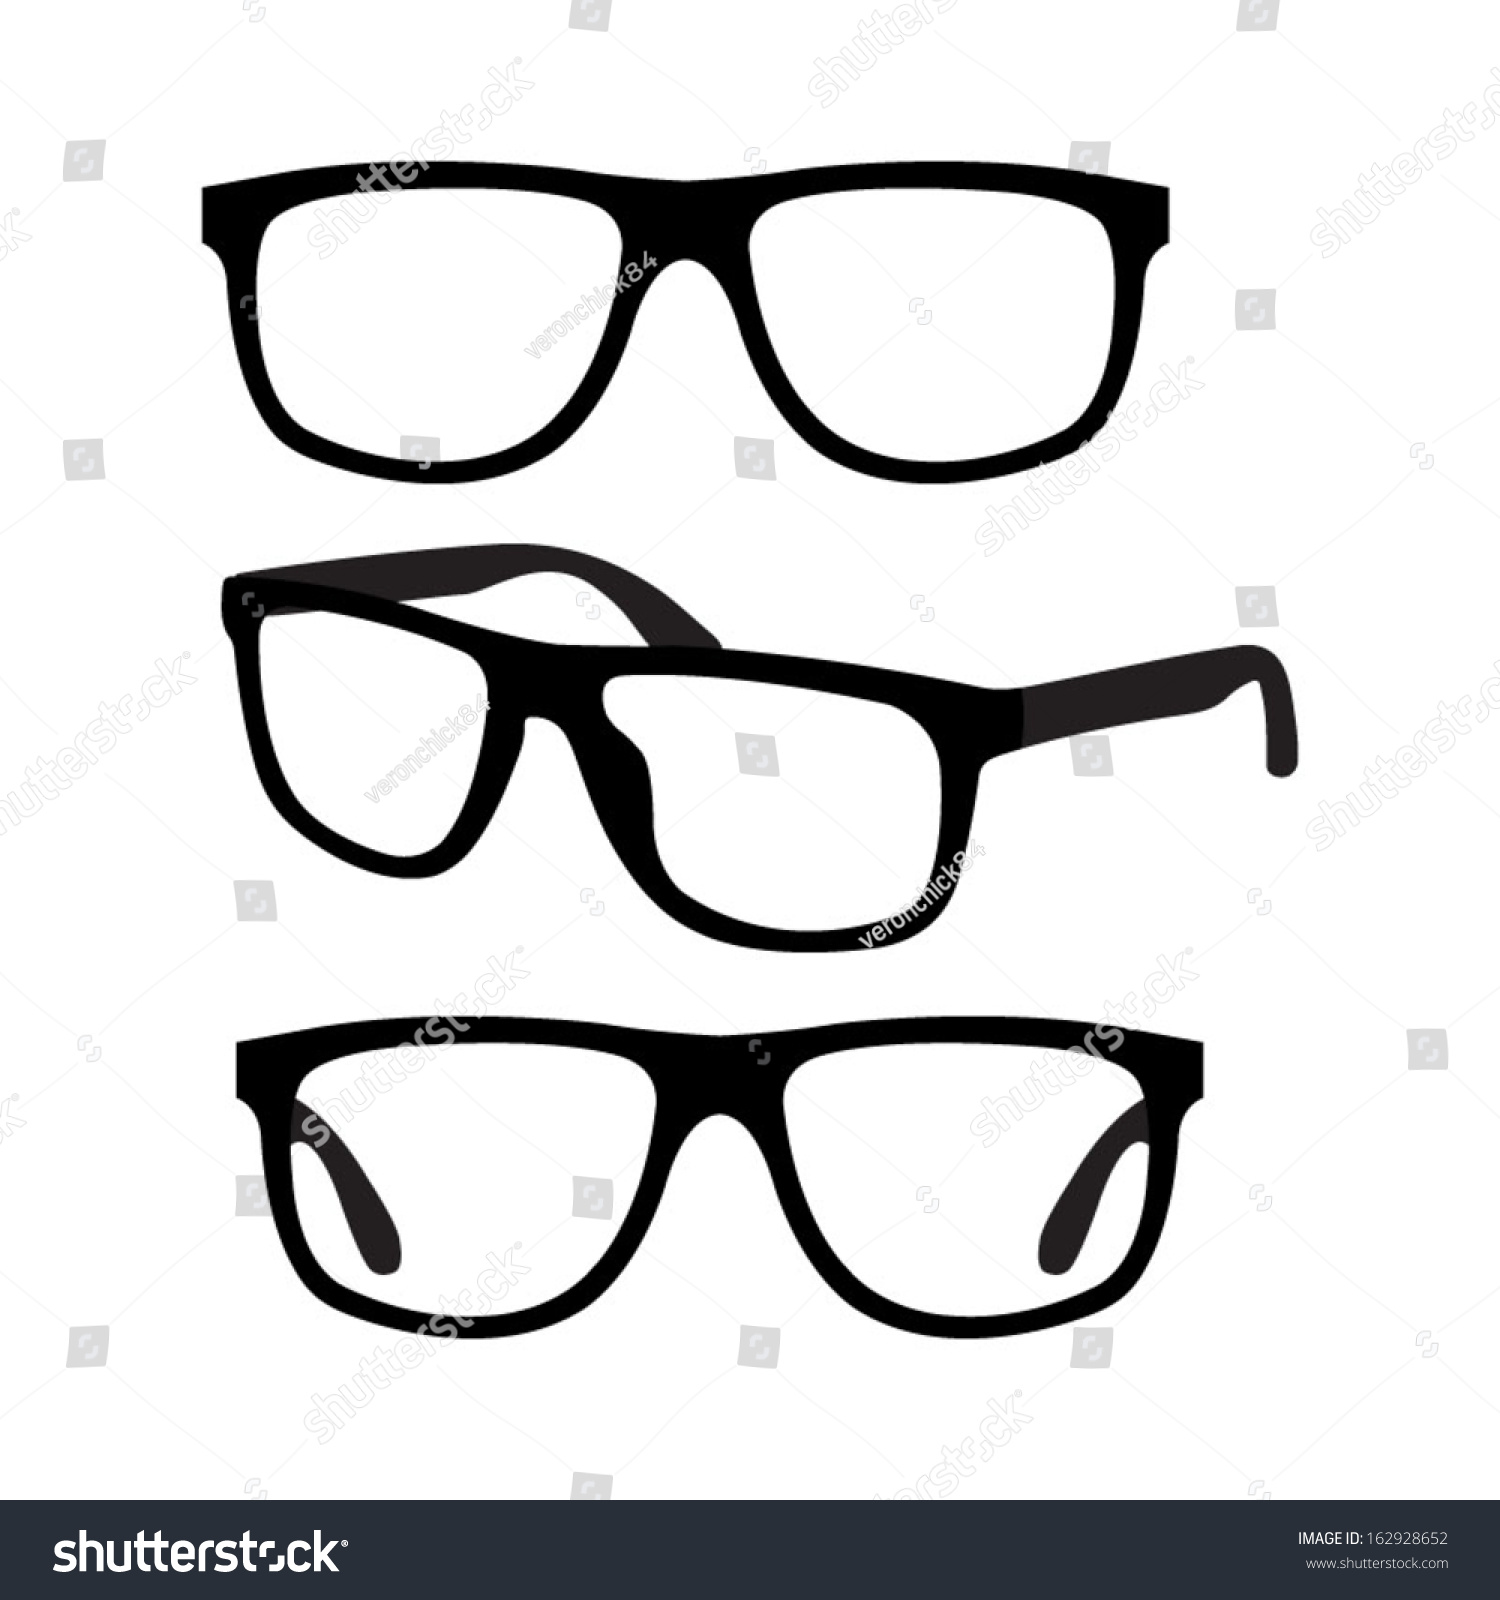 Glasses Vector Set - 162928652 : Shutterstock